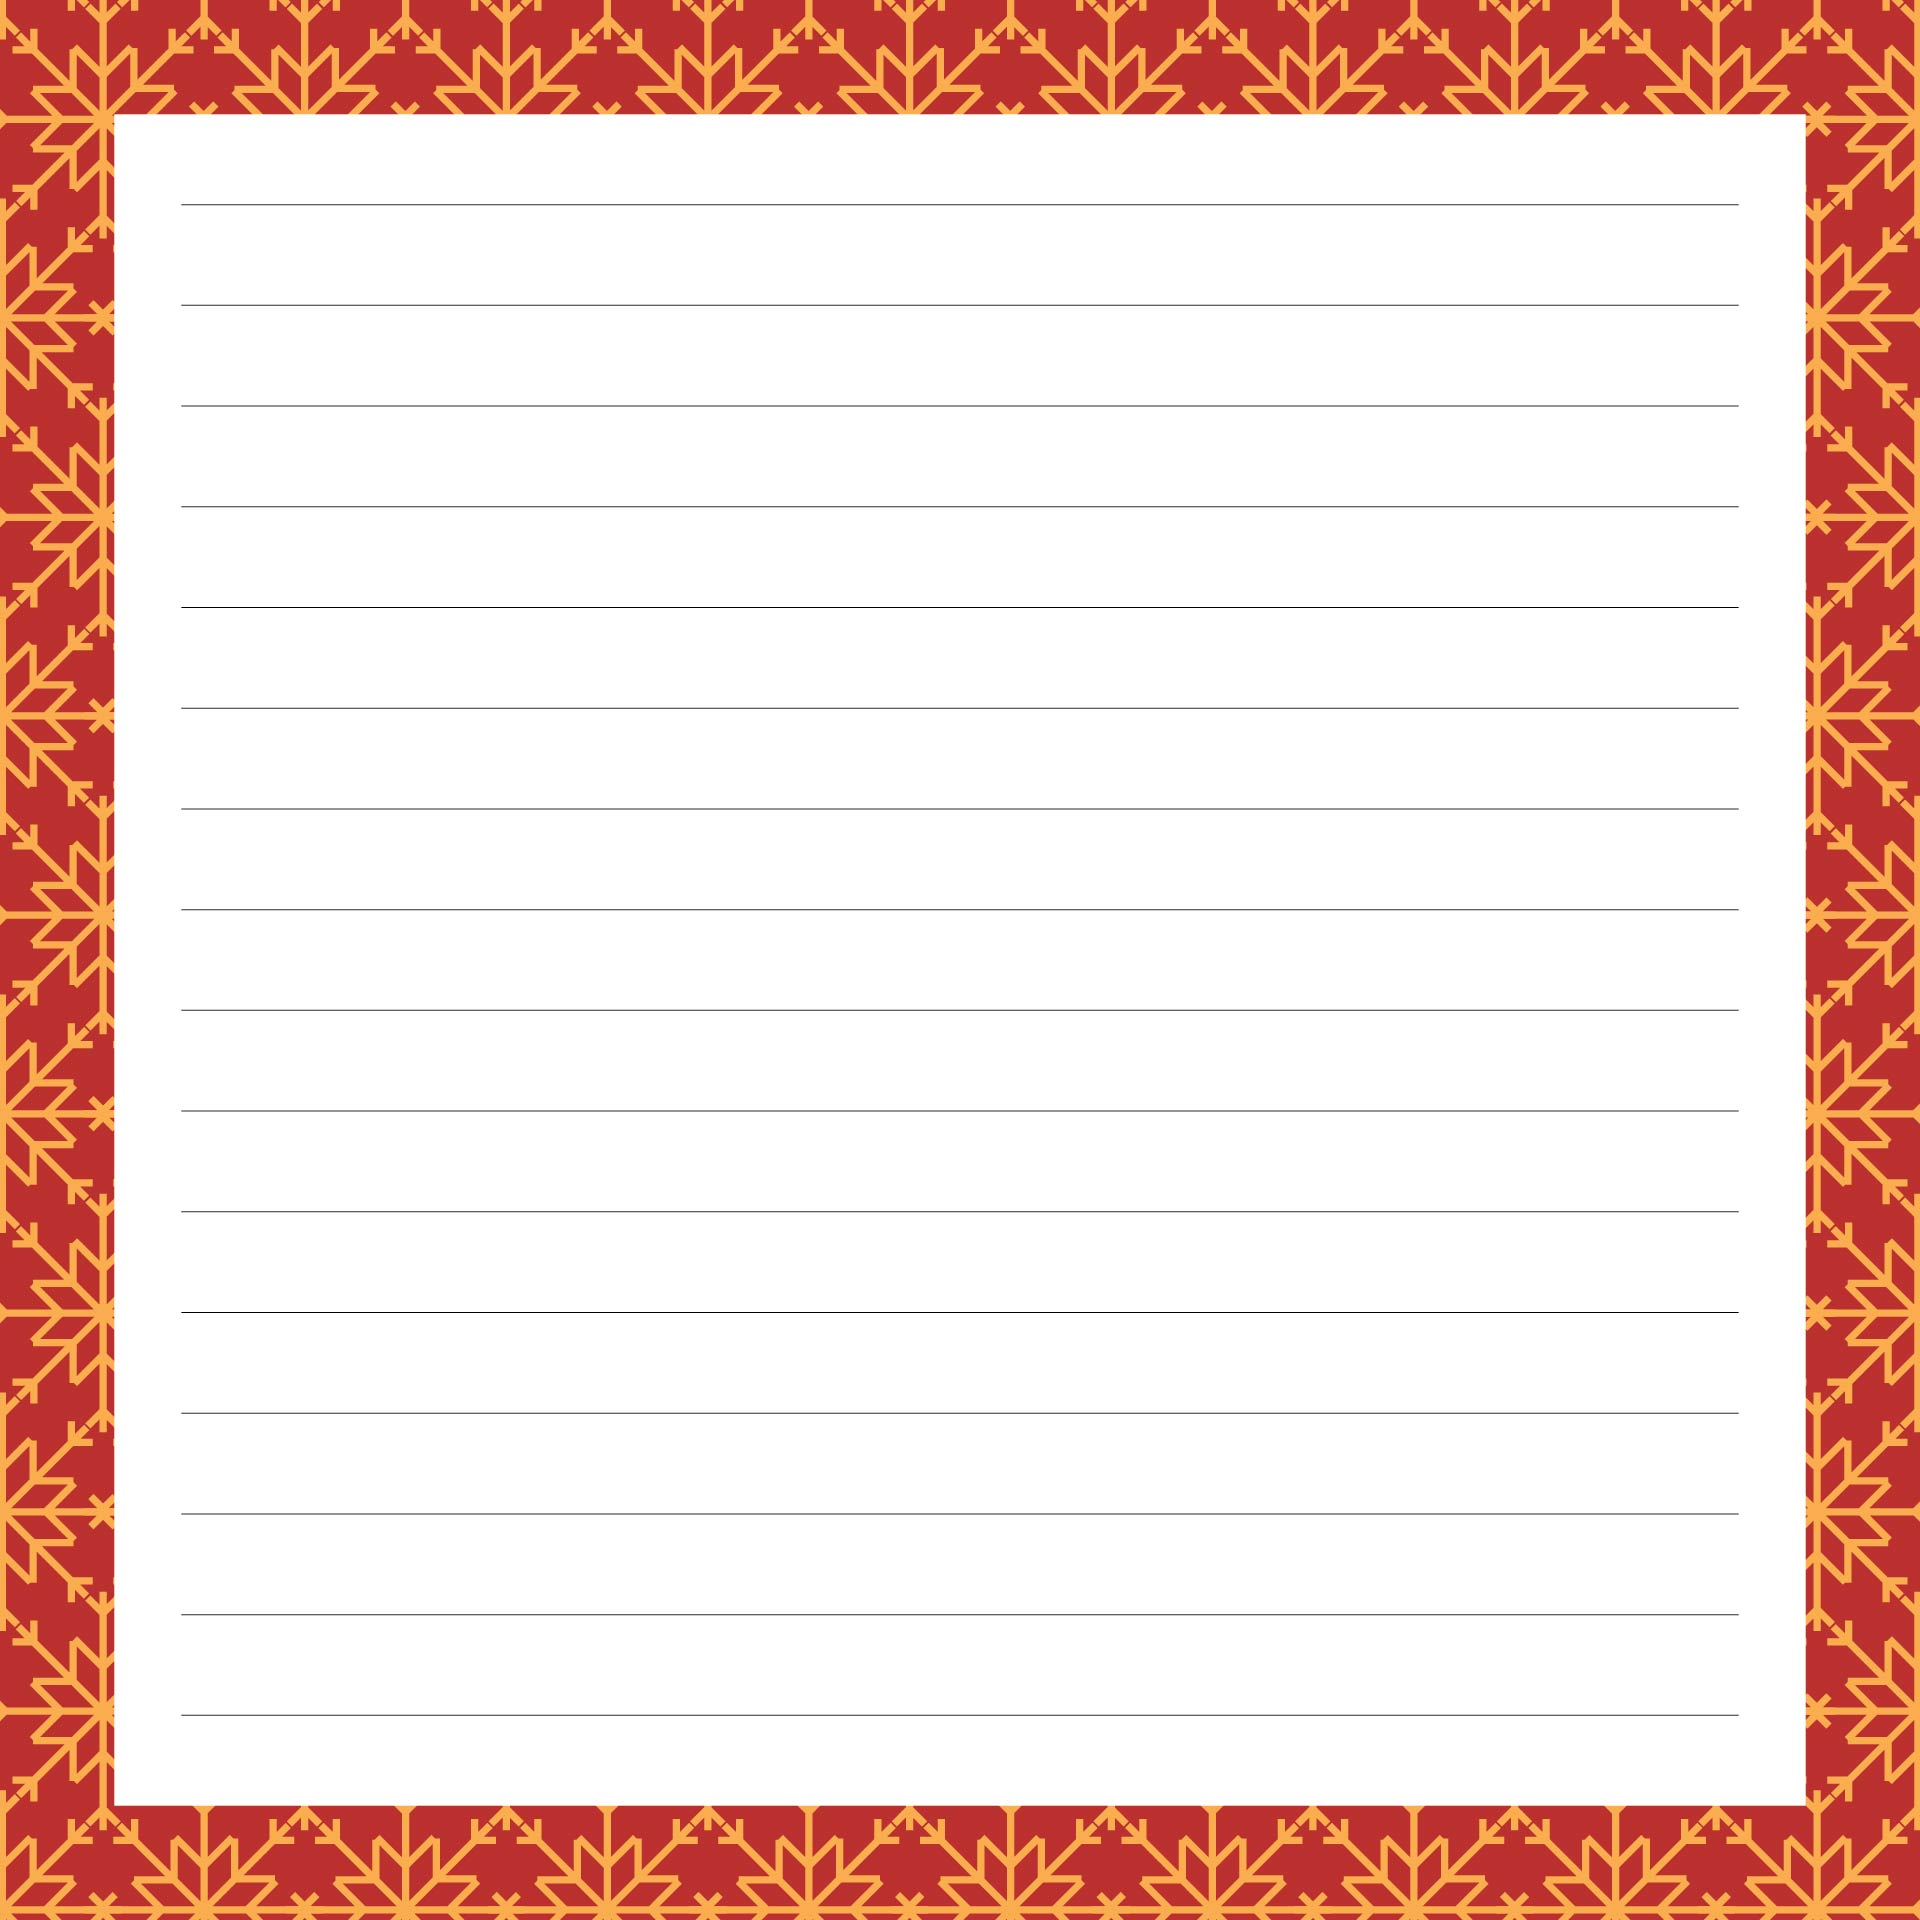 7 Images of Printable Christmas Lined Paper